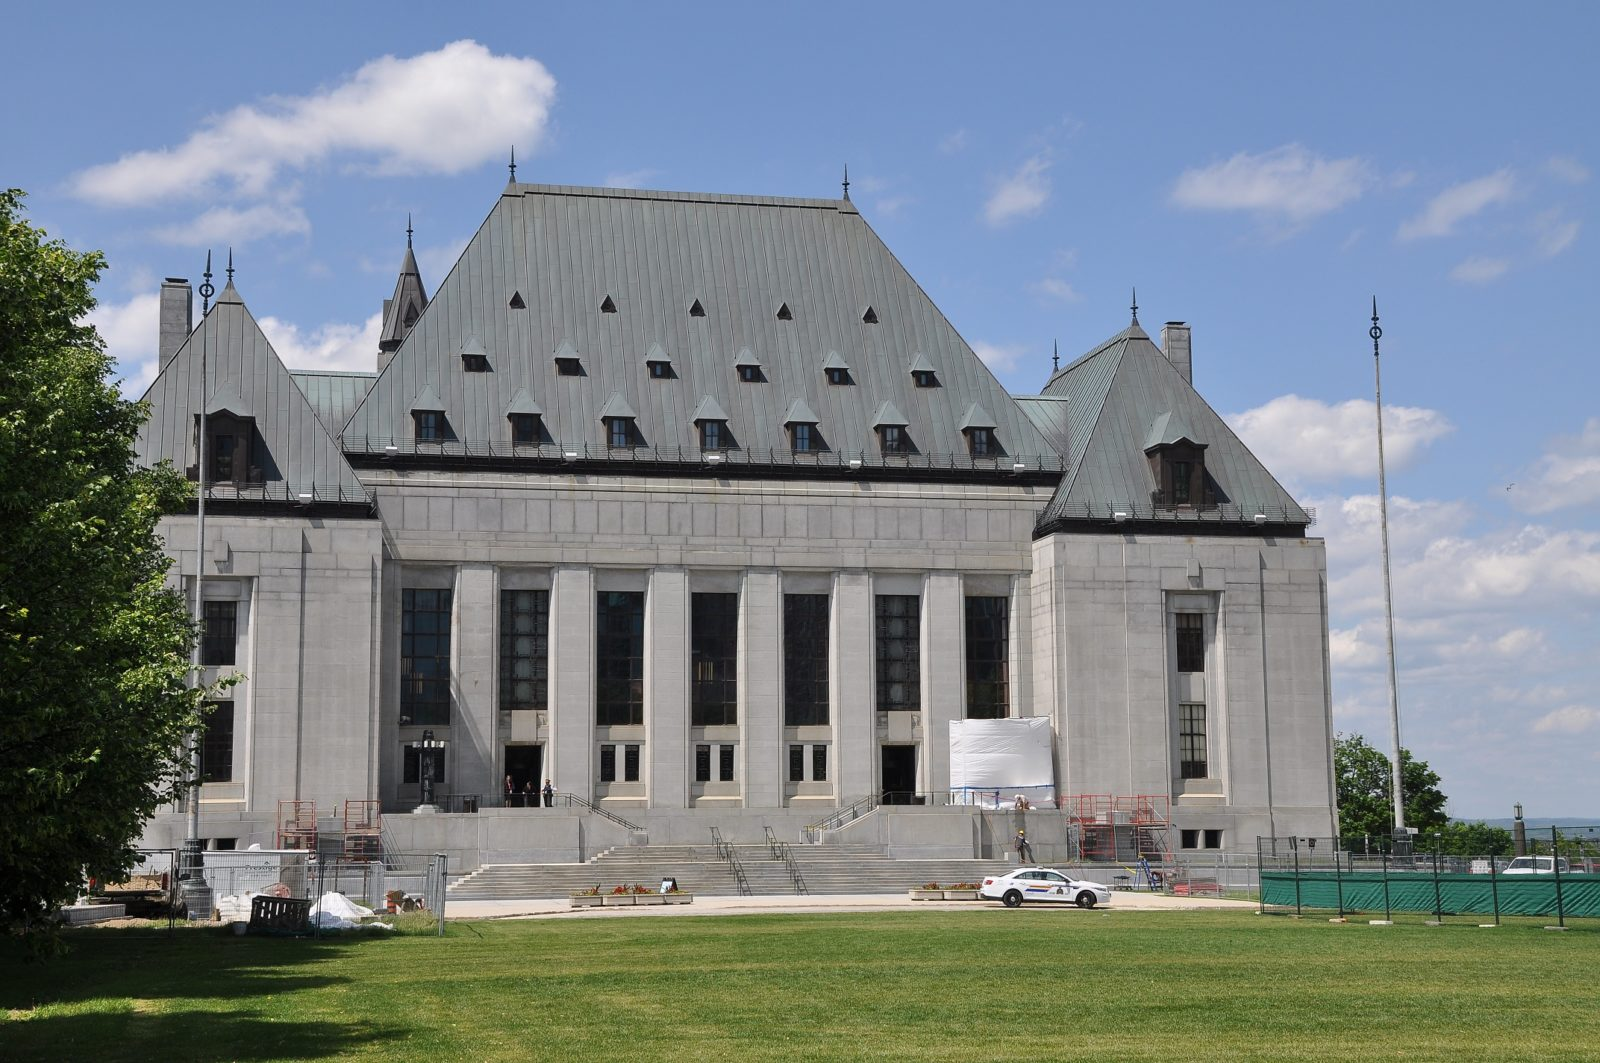 """""""File:Supreme Court of Canada, Ottawa (20752049675).jpg"""" by Shankar S. from Dubai, United Arab Emirates is licensed under CC BY 2.0."""